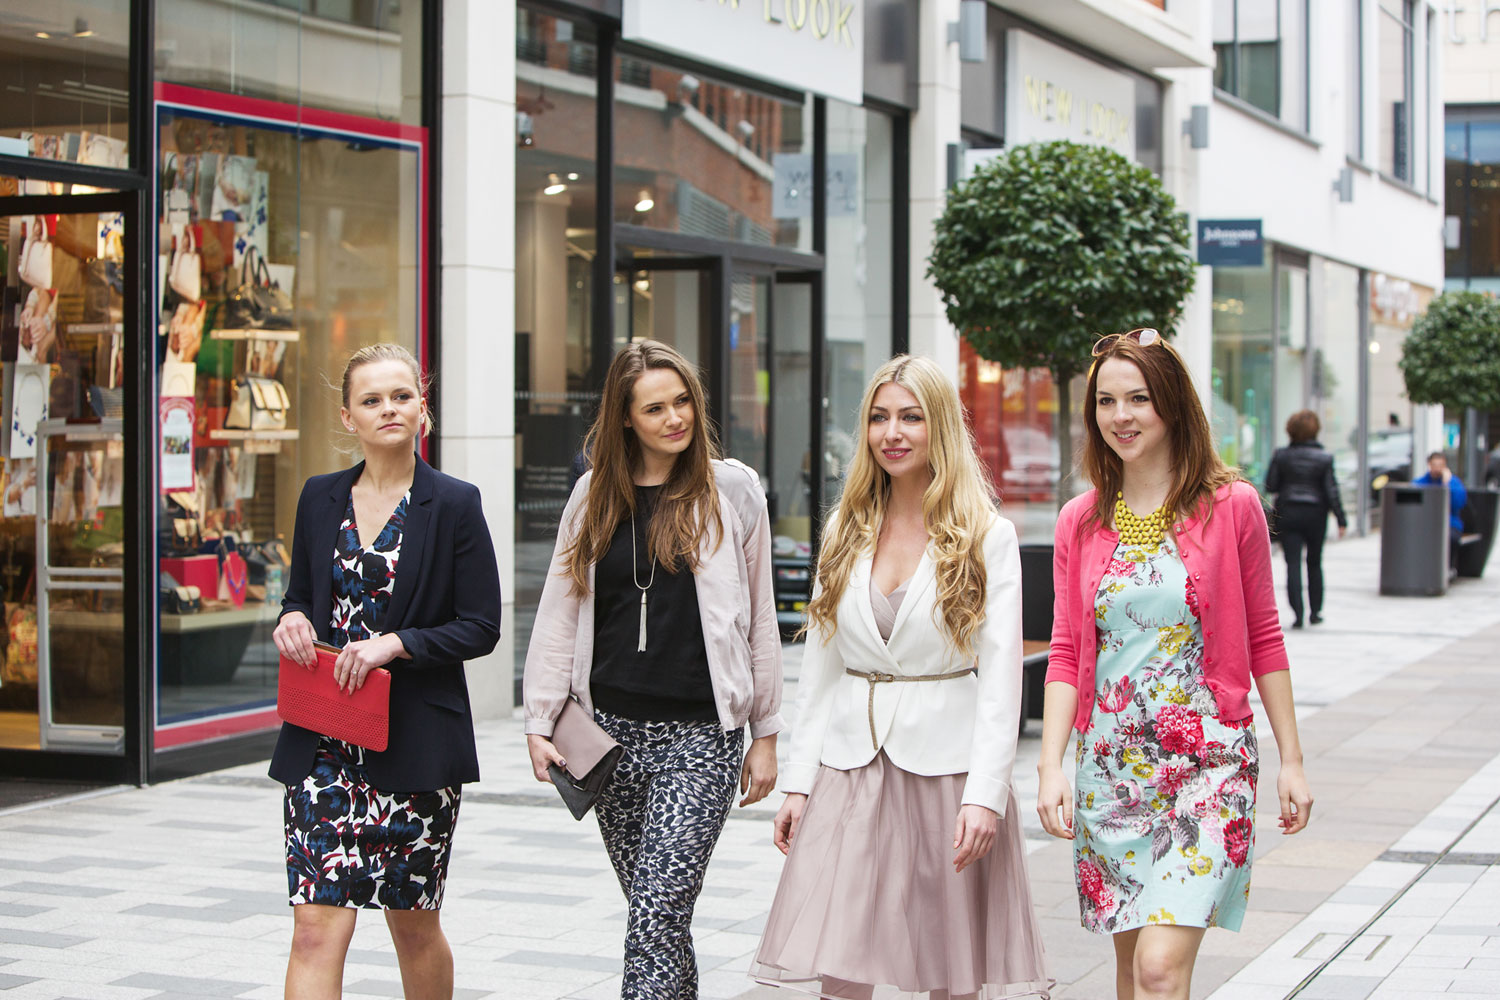 Retail & Fashion Photography - Adam Hillier Photography